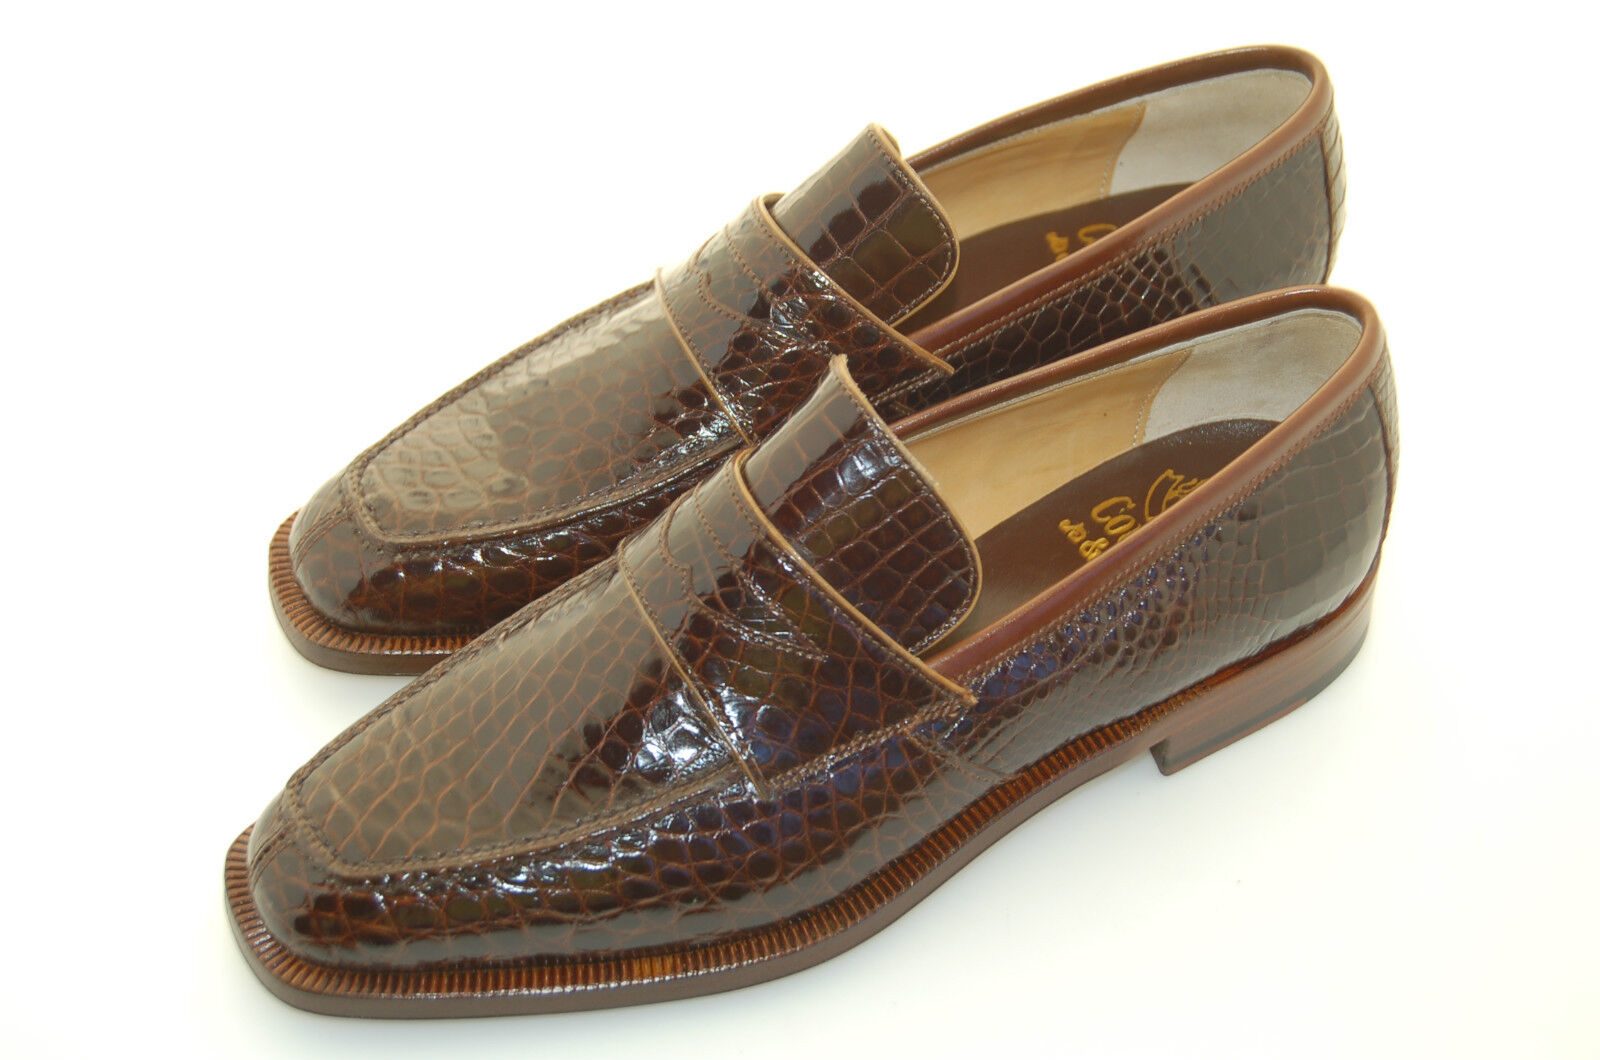 WOMAN - 36½ - STITCHED 6USA - PENNY LOAFER STITCHED - VAMP - GENIUNE ALLIGATOR - LTH SOLE 267125